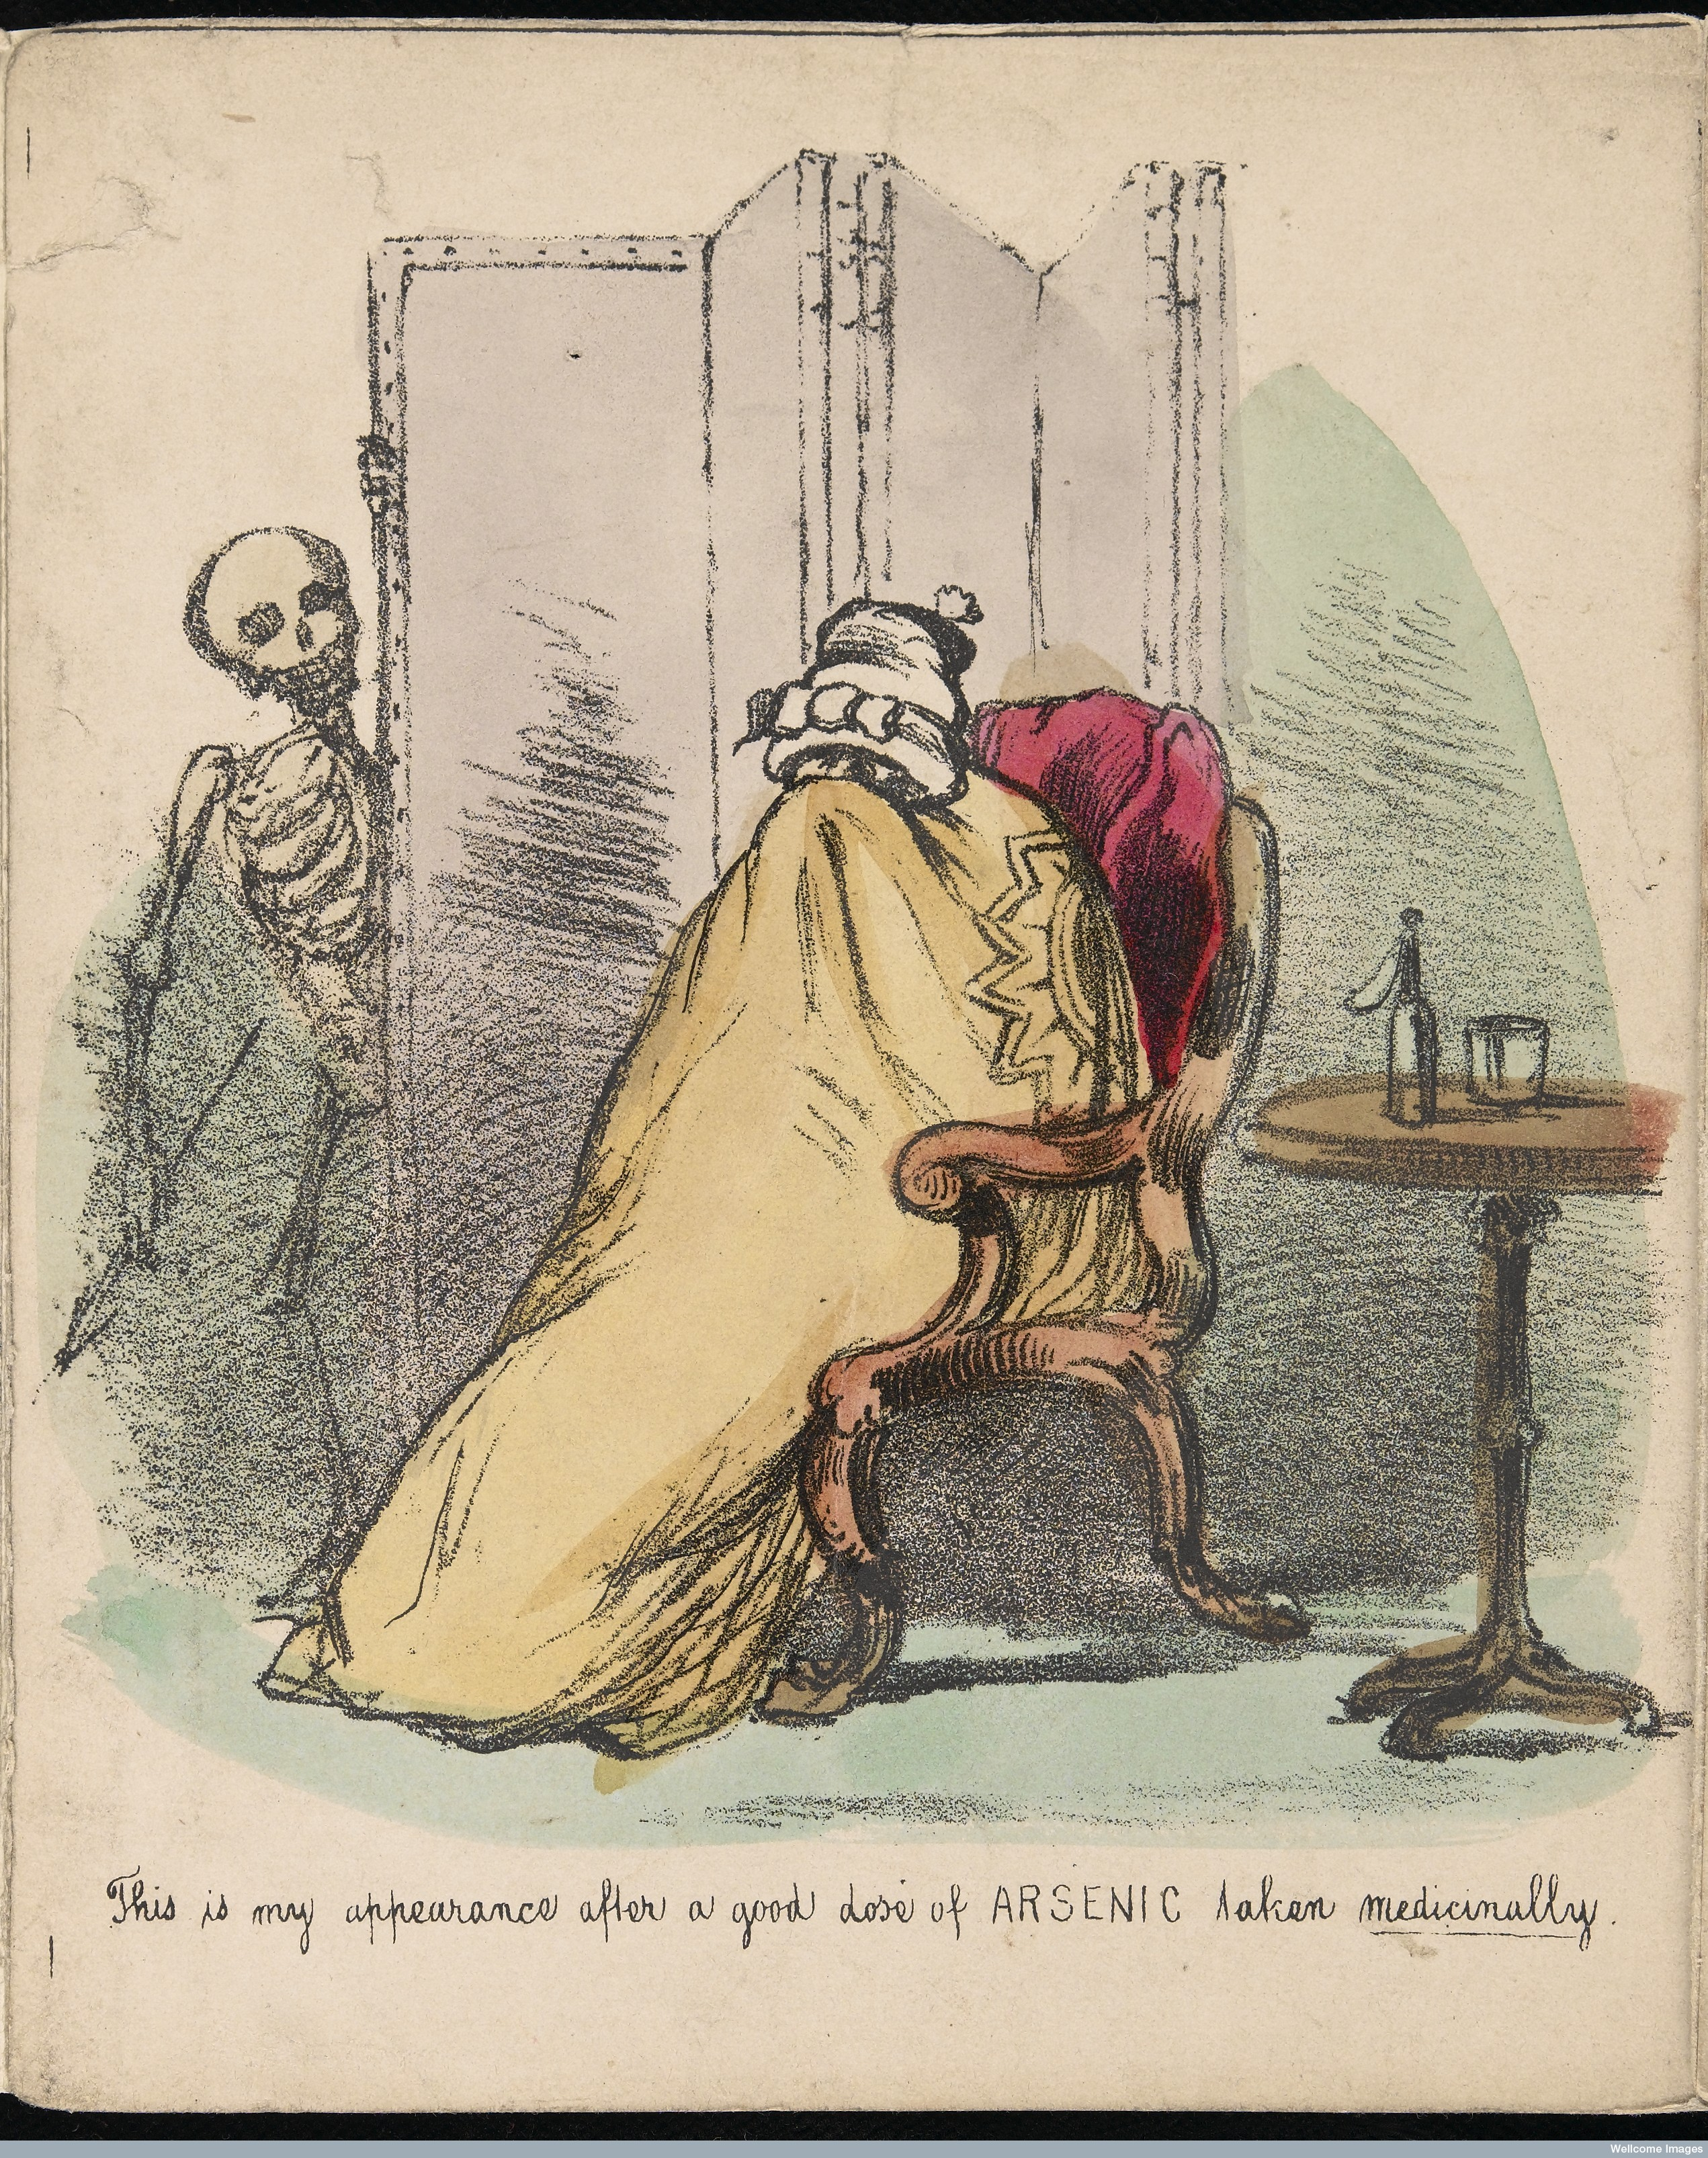 A patient suffering adverse effects of arsenic treatment - Wellcome Collection